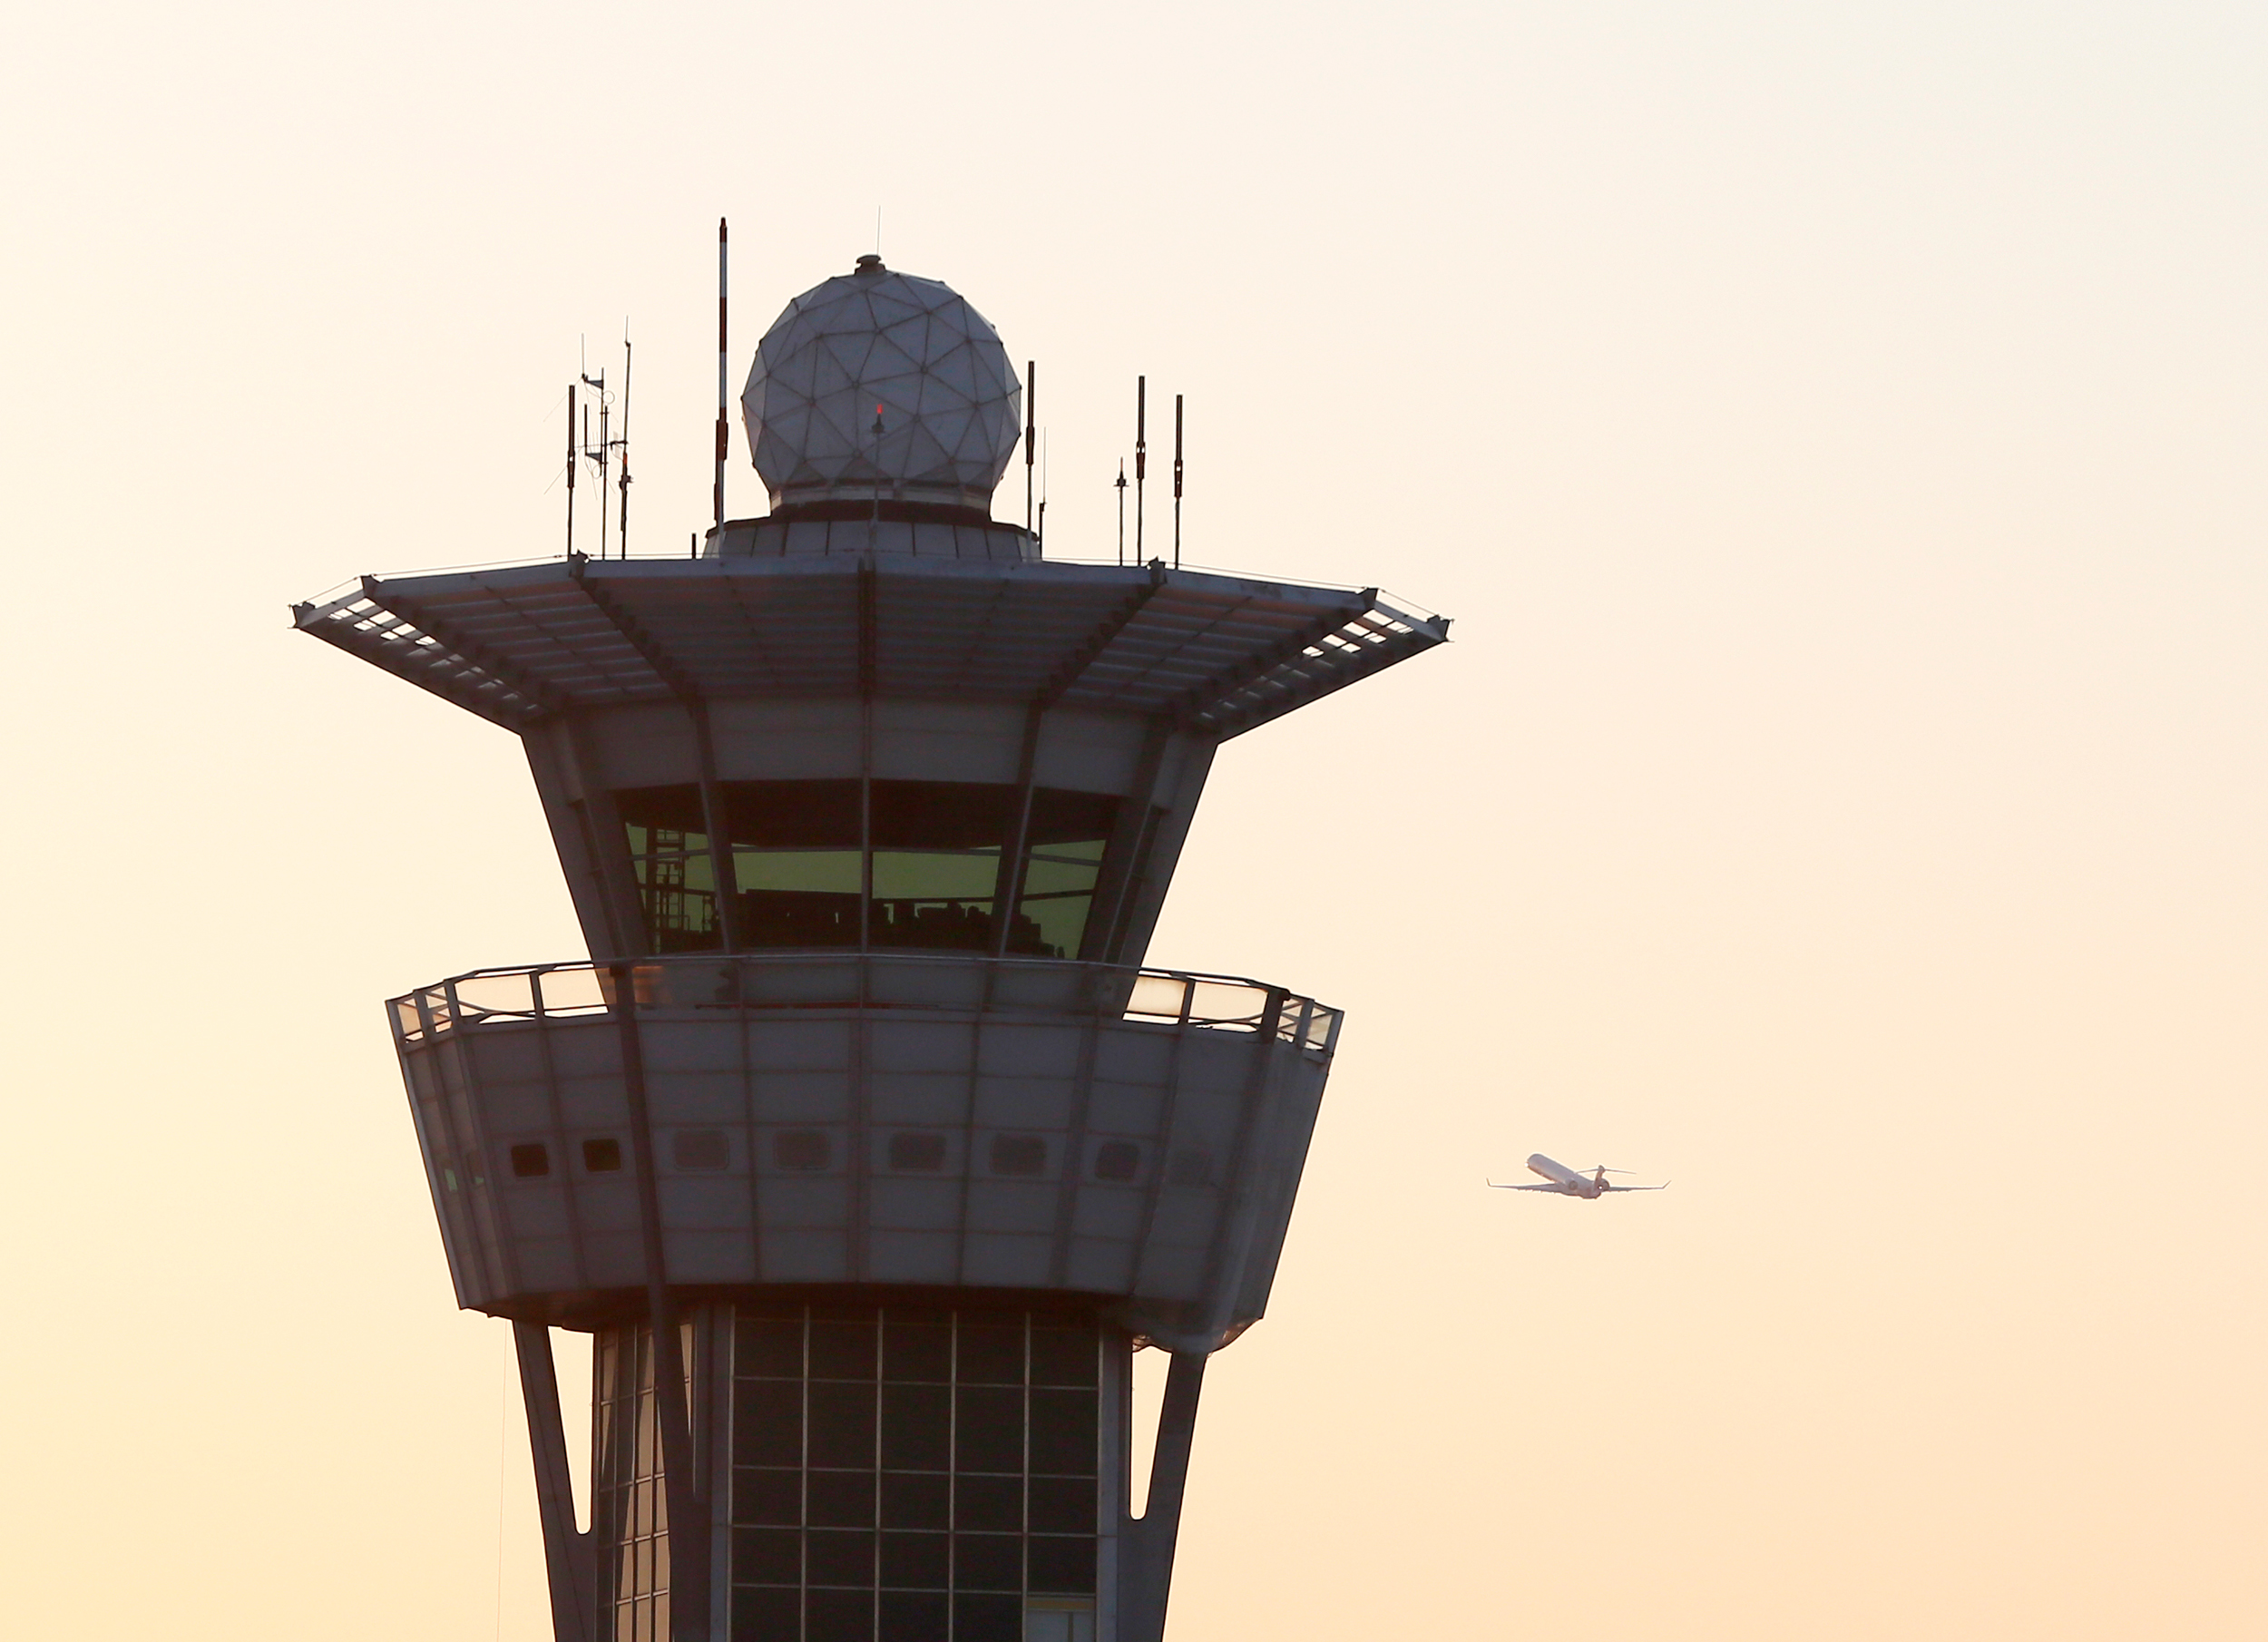 Air Traffic Controller Shortage a Crisis: Union